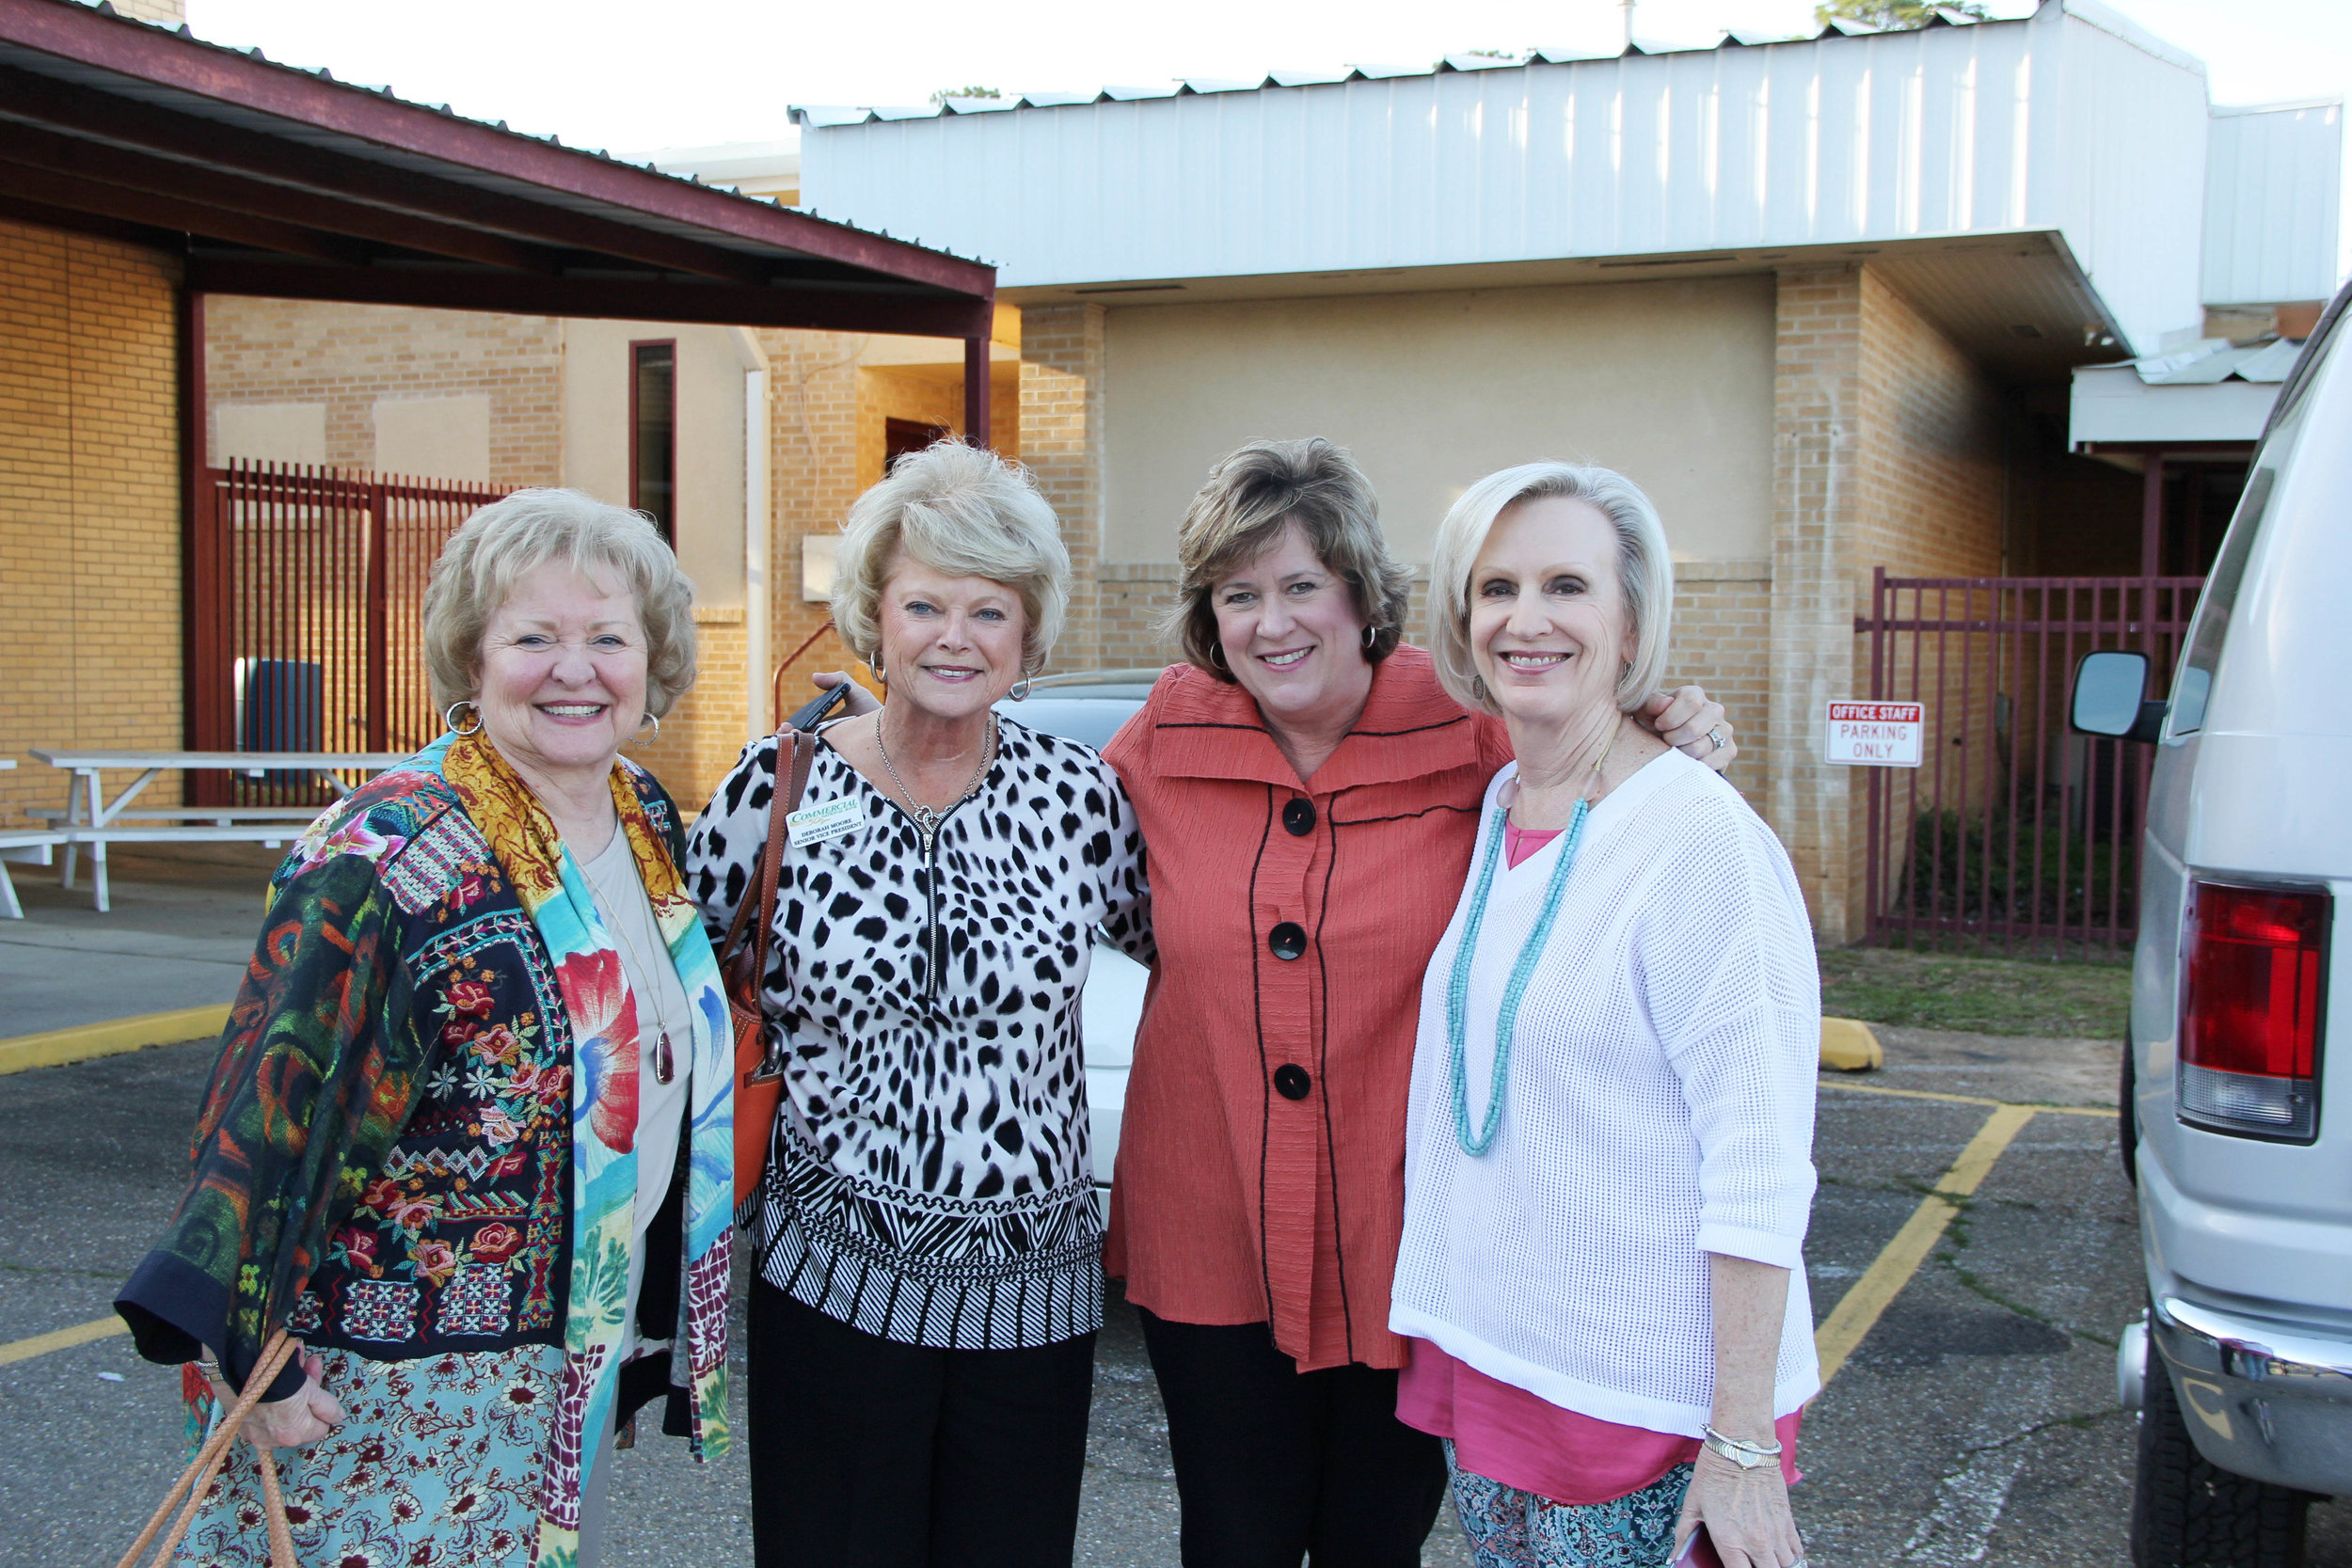 Joan Carter, Debra Moore, Trish Russell and Patsy Morriss